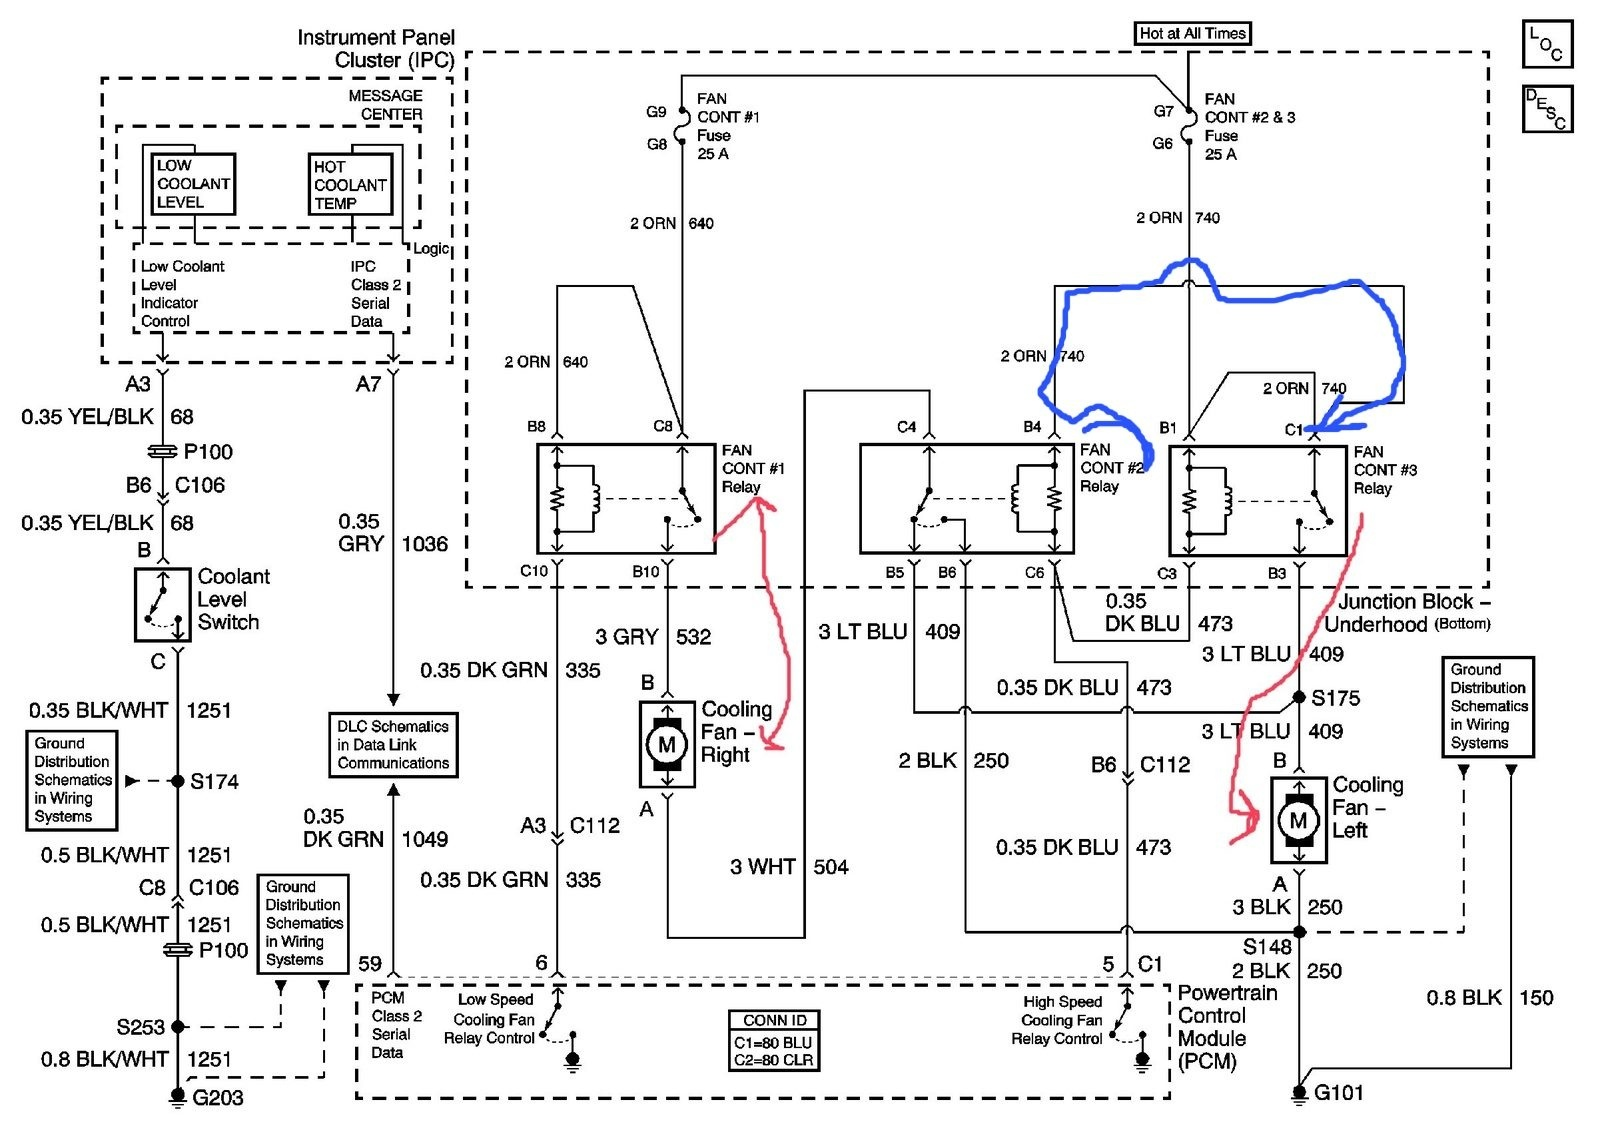 wiring diagram for 2003 bmw 530i wiring diagram for 2003